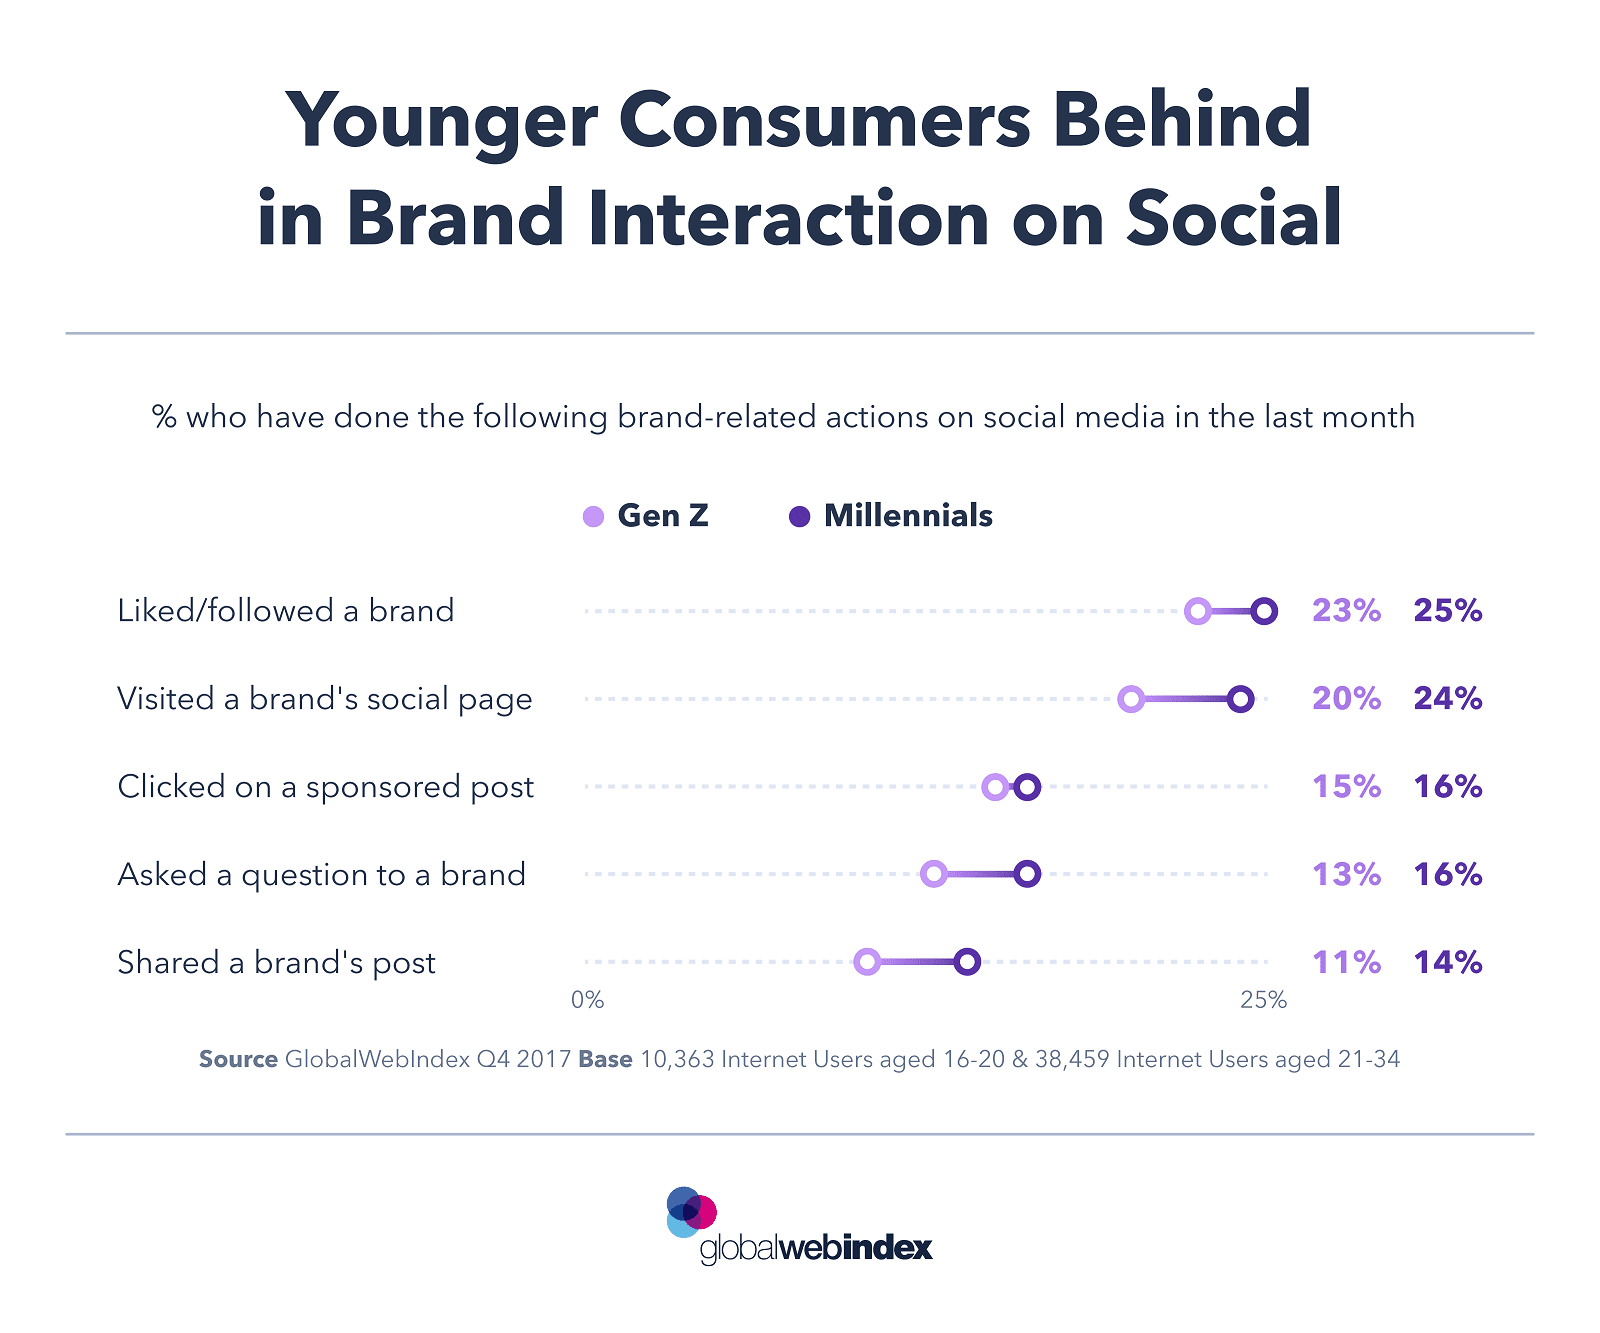 CHART OF THE DAY - Younger Consumers Behind in Brand Interaction on Social